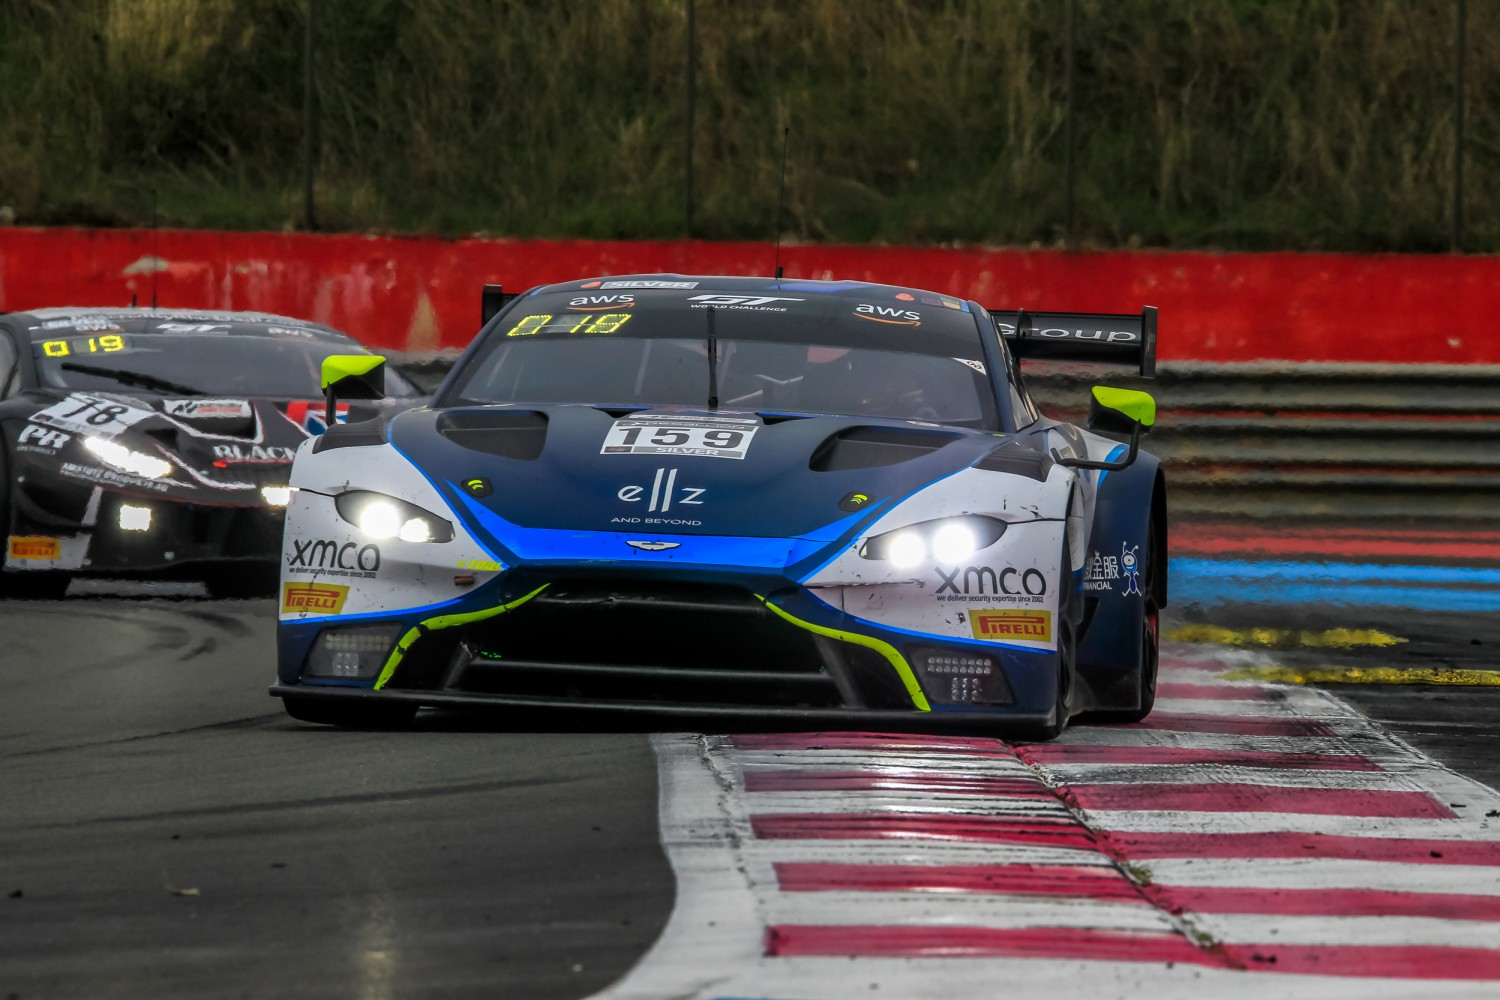 #159 Garage 59 GBR Aston Martin Vantage AMR GT3 Silver Cup Valentin Hasse Clot FRA Andrew Watson GBR James Pull GBR  | SRO / Patrick Hecq Photography